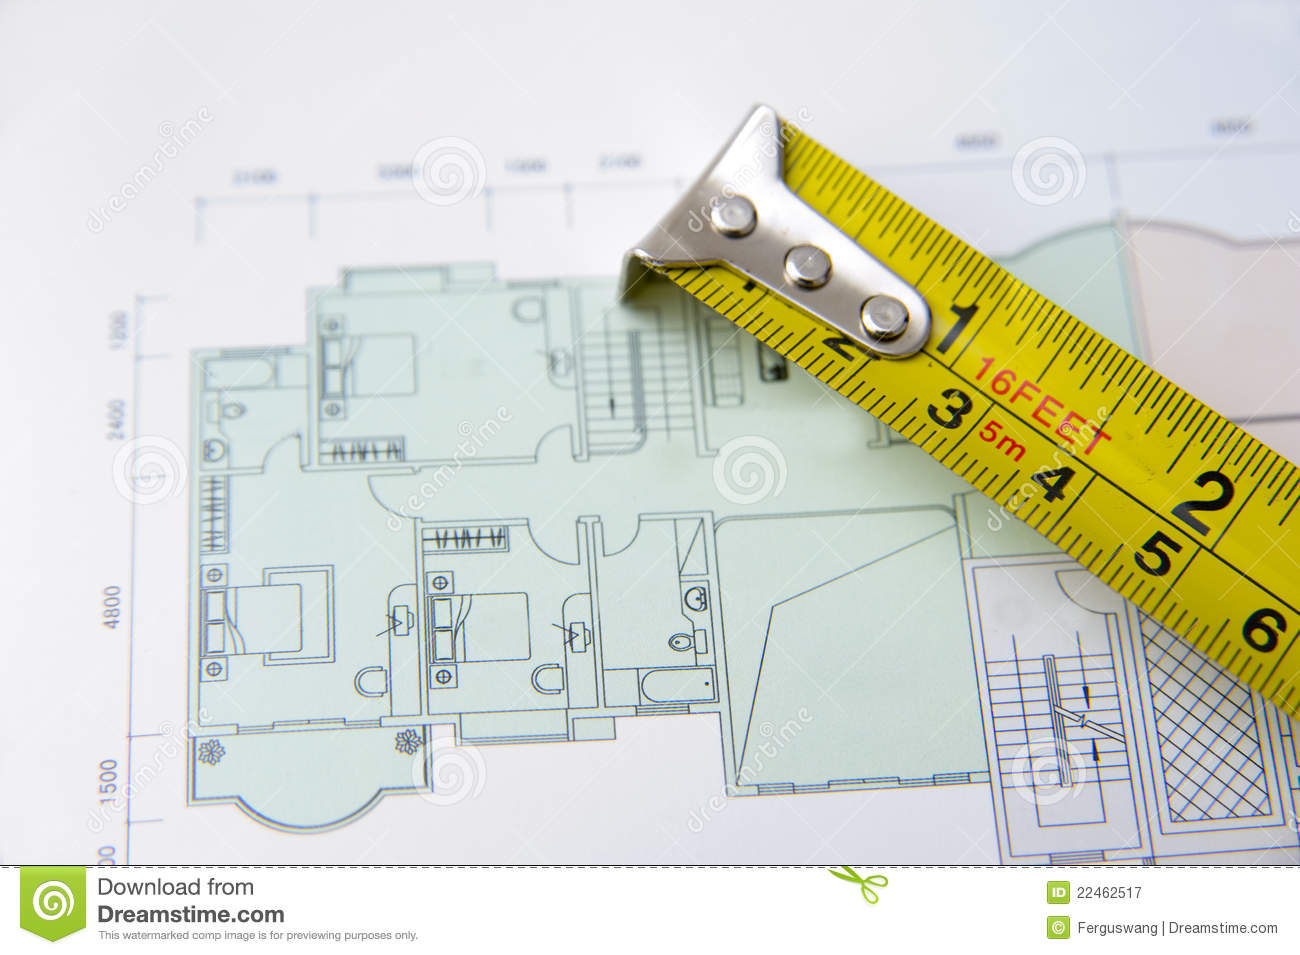 Rolls of architectural house plans tape measure royalty for House blueprints with measurements